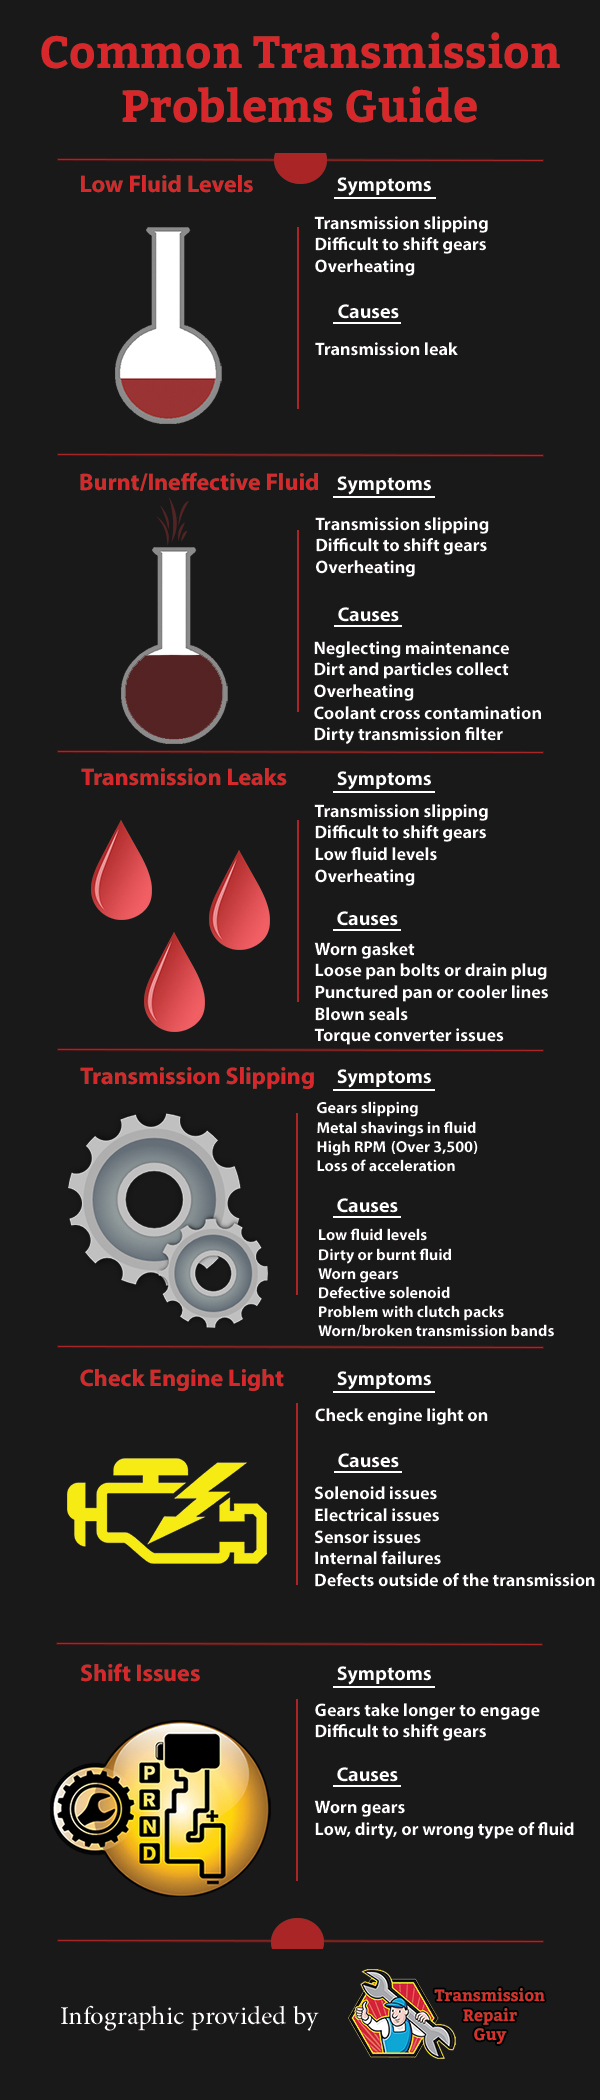 common transmission problems guide infographic - transmission repair guy